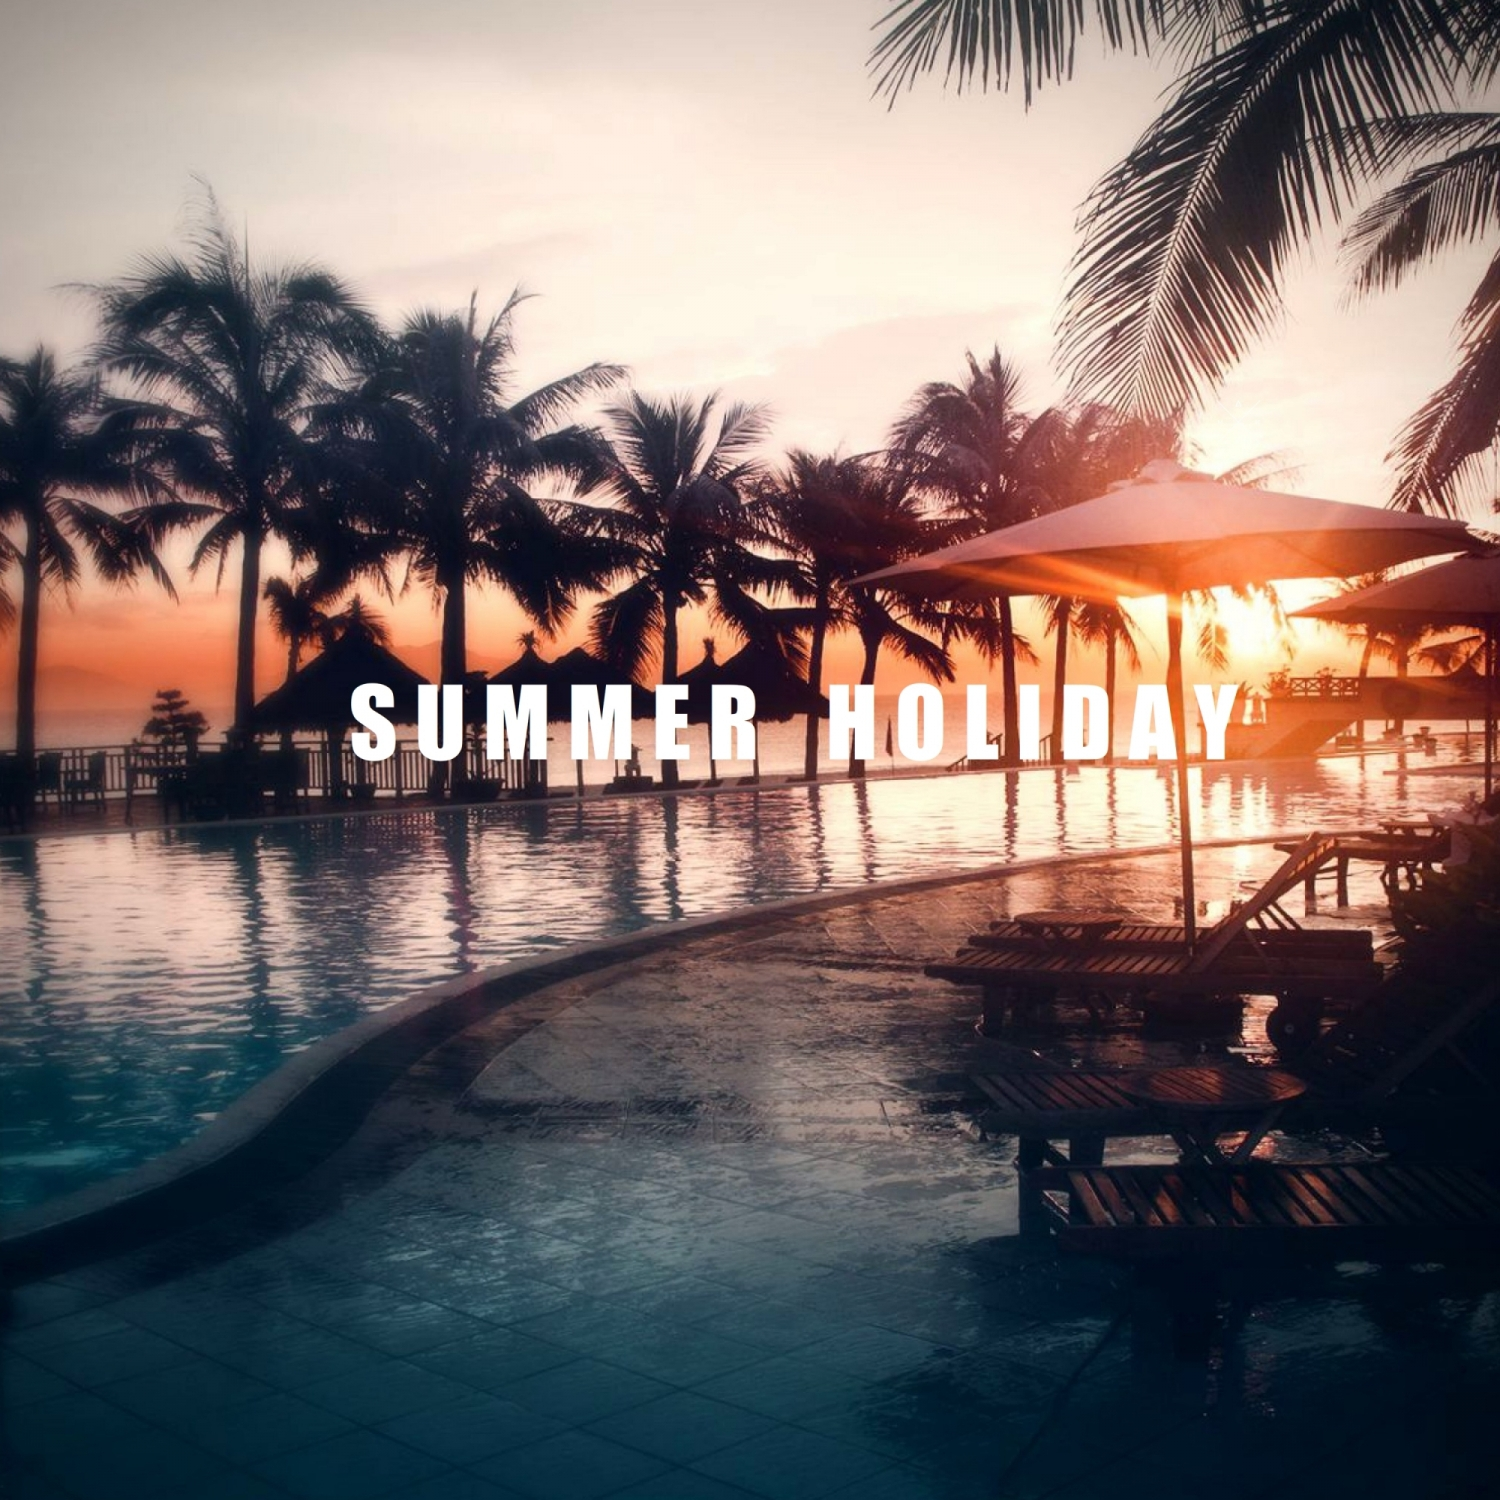 Hypebeast & Kelly Holiday - Summer Holiday (feat. Kelly Holiday) (Classic House Music edit)